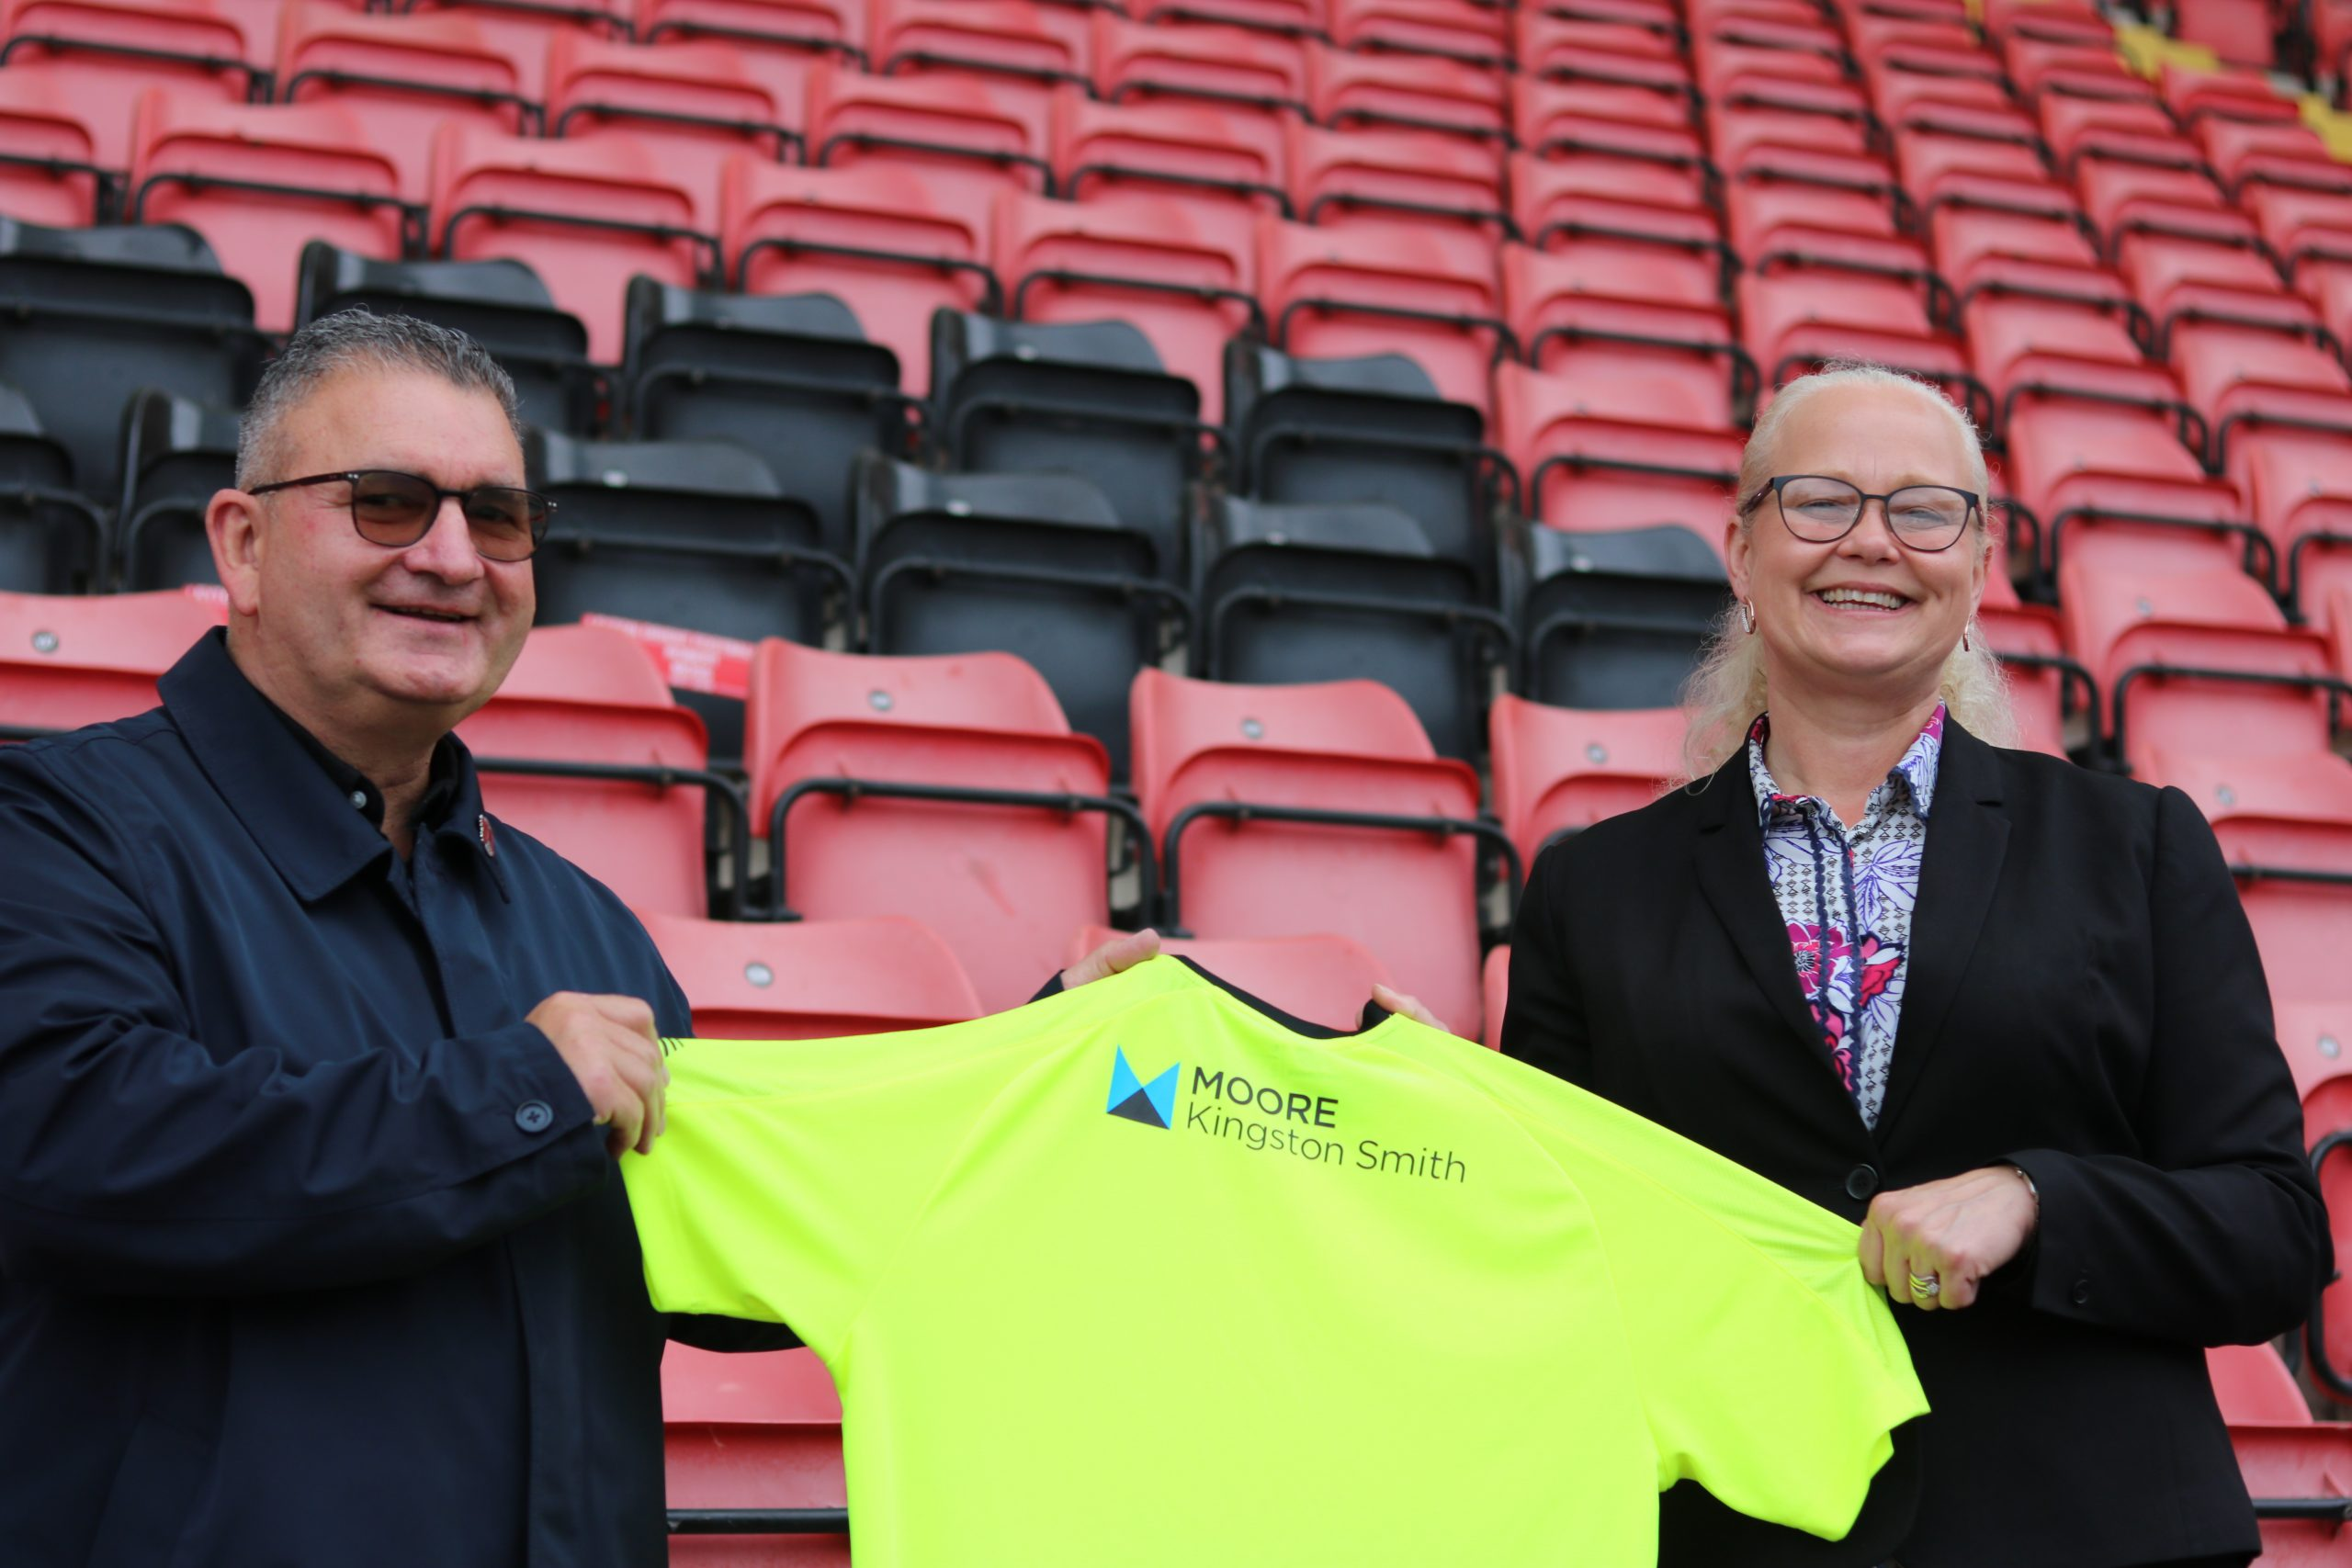 Moore Kingston Smith scores new sponsorship opportunity with Leyton Orient's Women's Football Club